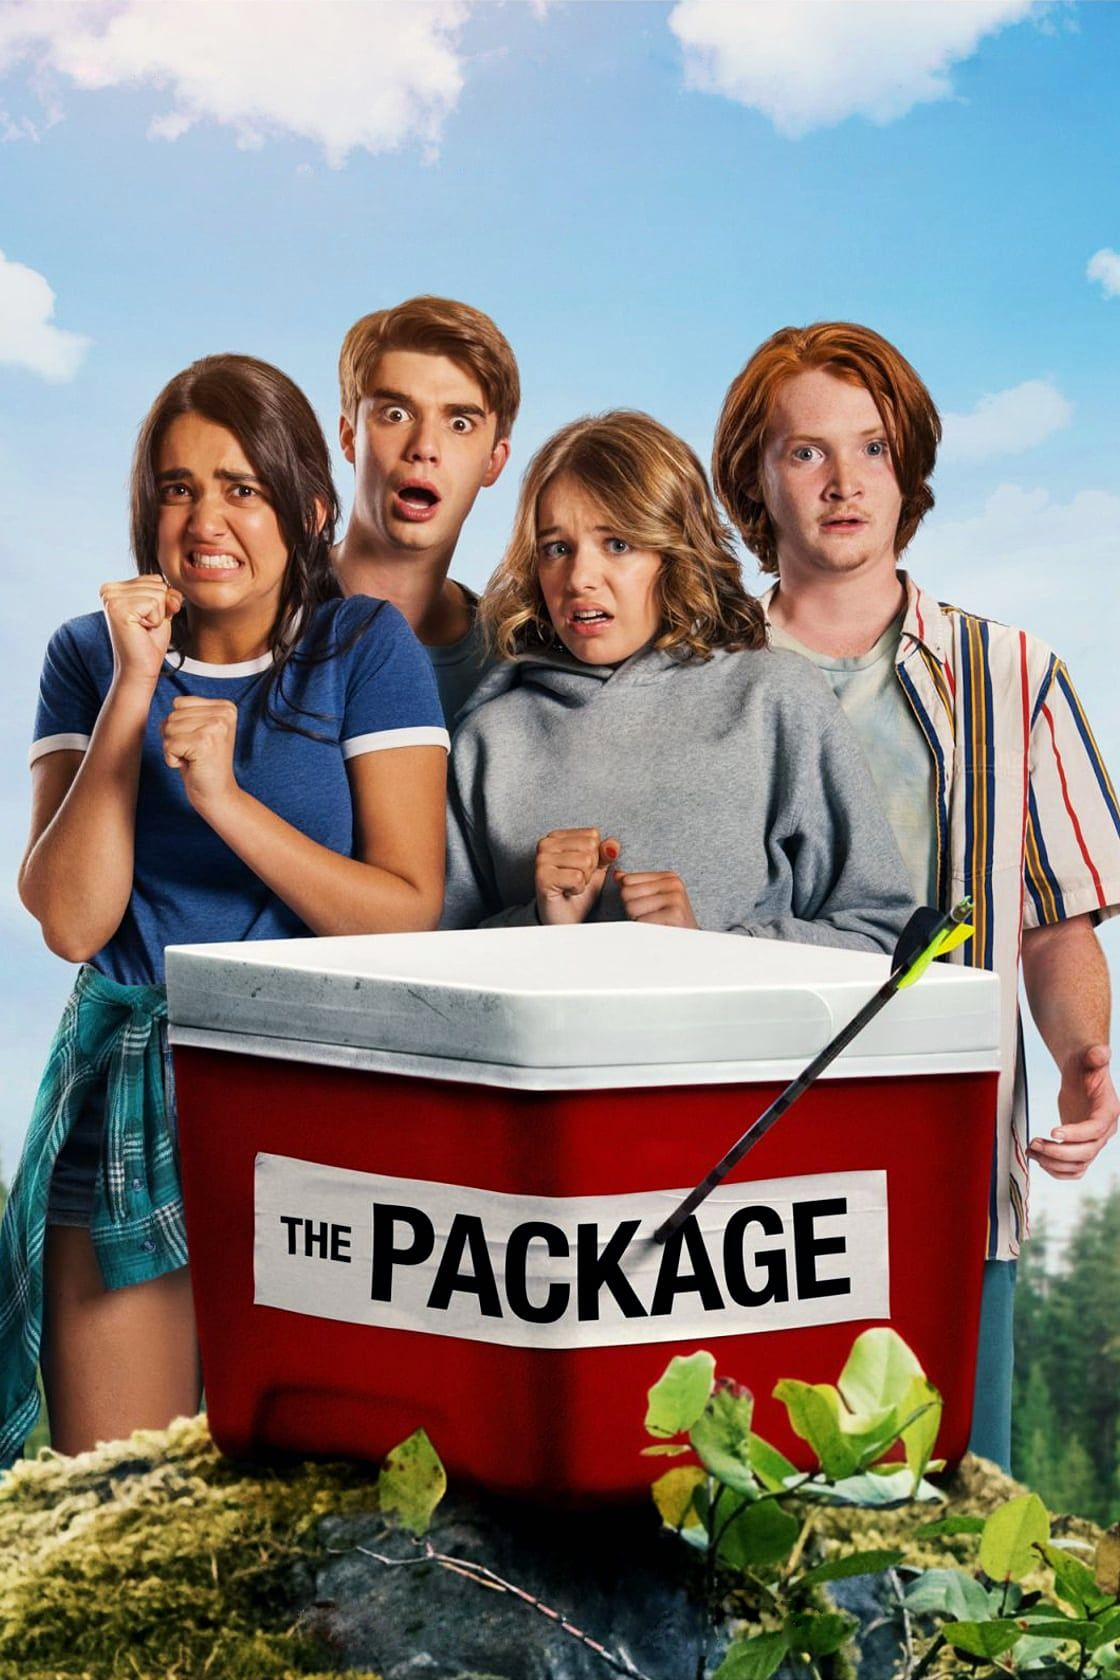 The Package Teljes Film Videa Hungary Thepackage Magyarul Teljes Magyar Film Videa 2019 Free Movies Online Streaming Movies Online Streaming Movies